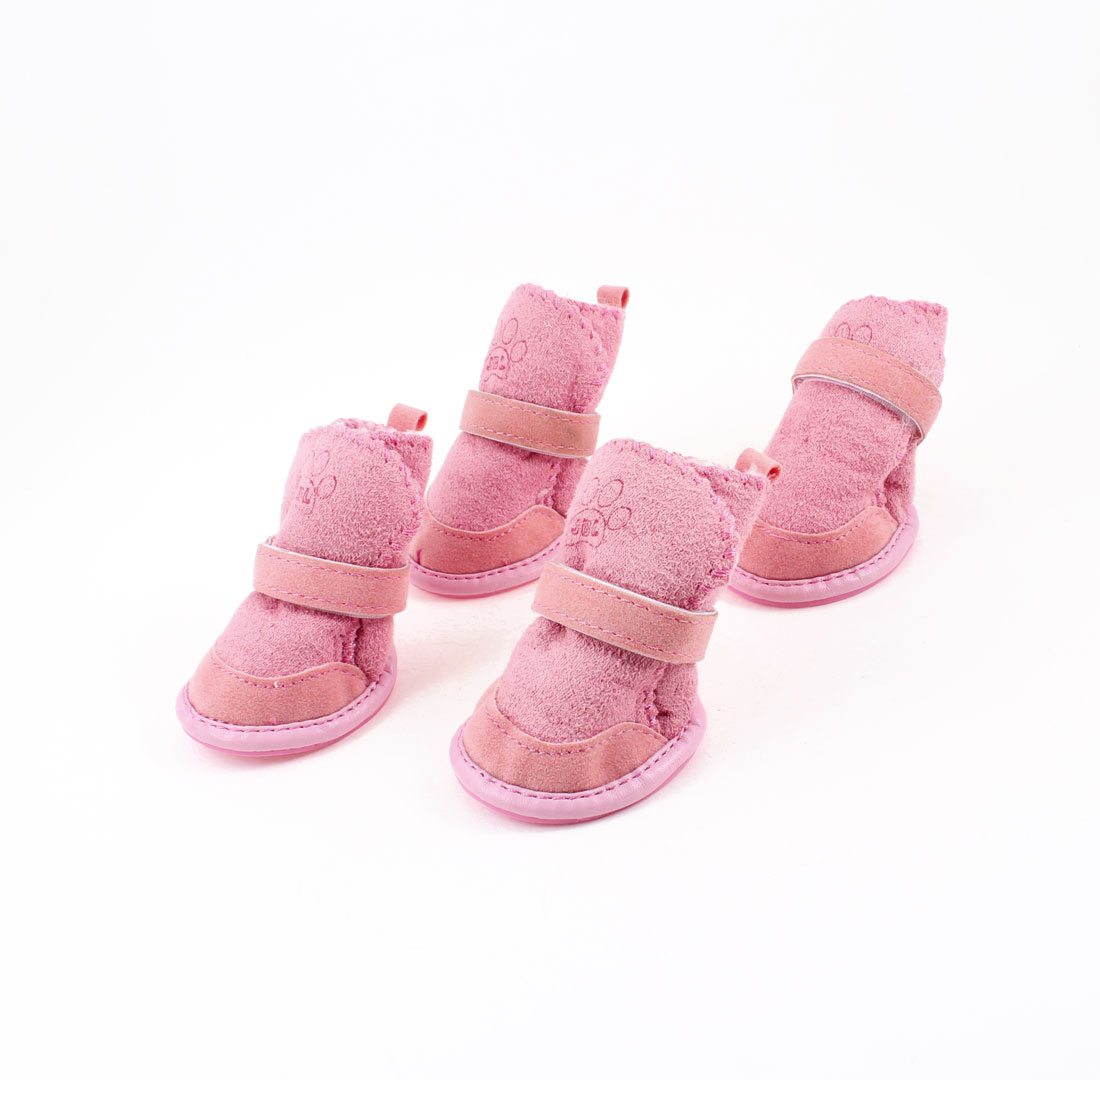 Pink Nonslip Sole Hook and Loop Fastener Booties Pug Dog Chihuahua Shoes Boots 2 Pair XXS